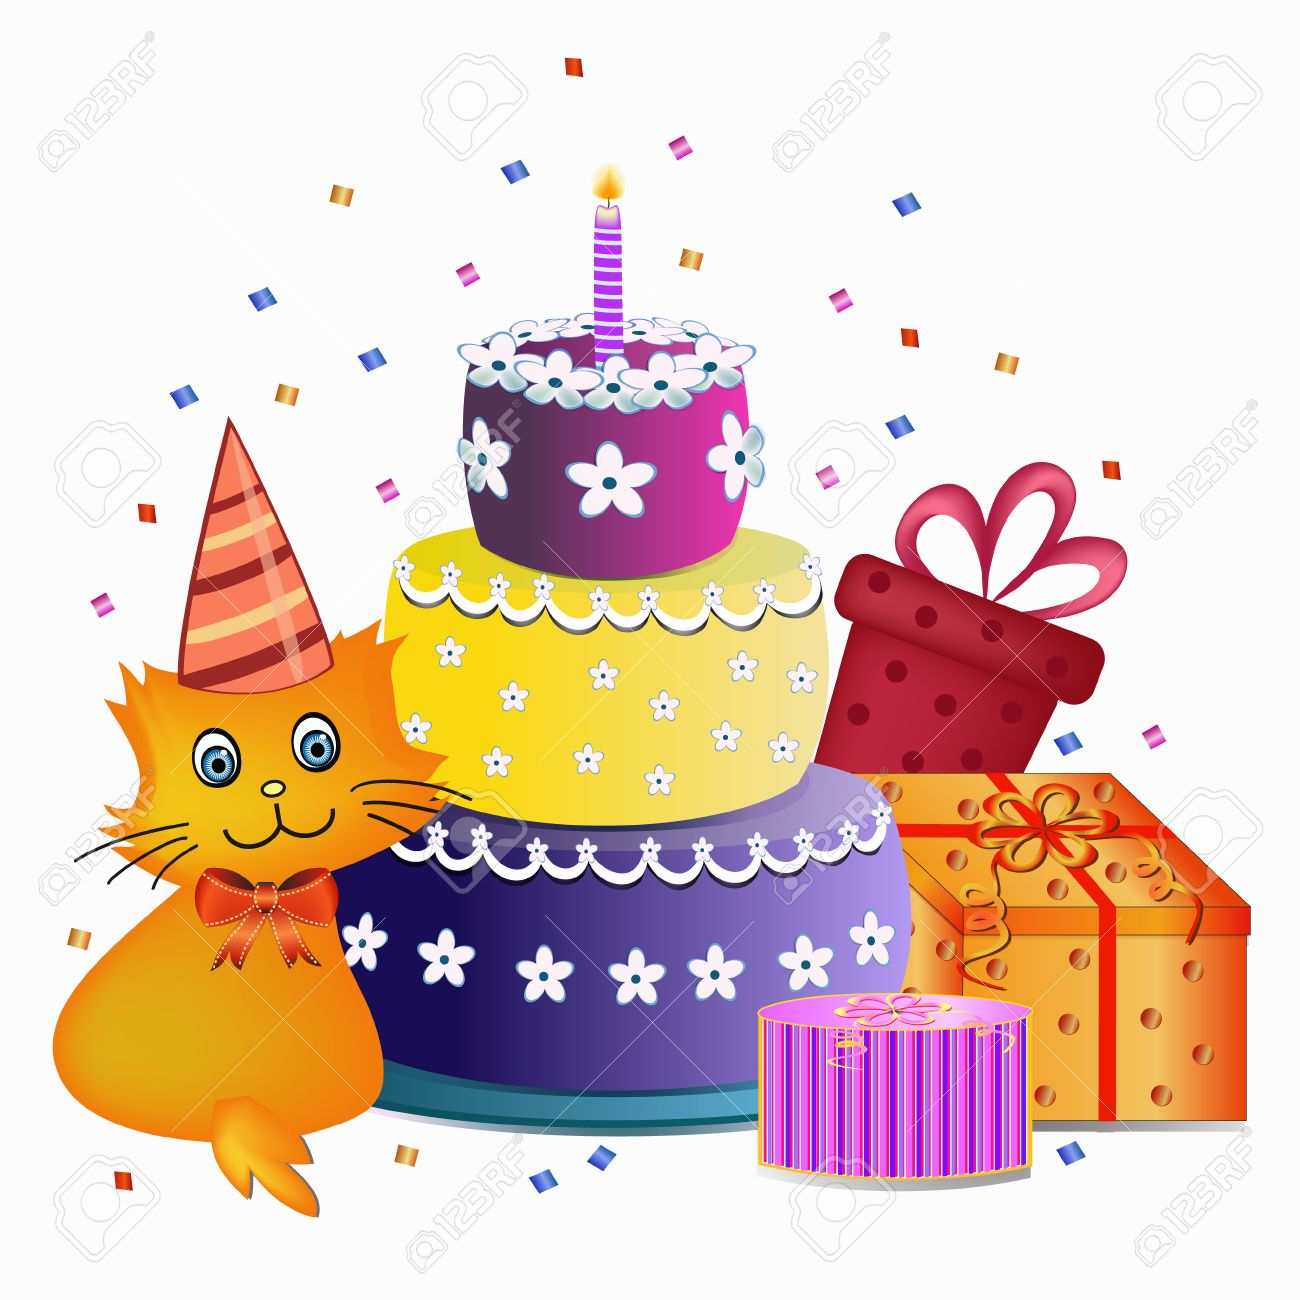 cat birthday clipart ; 36343051-colorful-happy-birthday-cake-cat-and-present-illustration